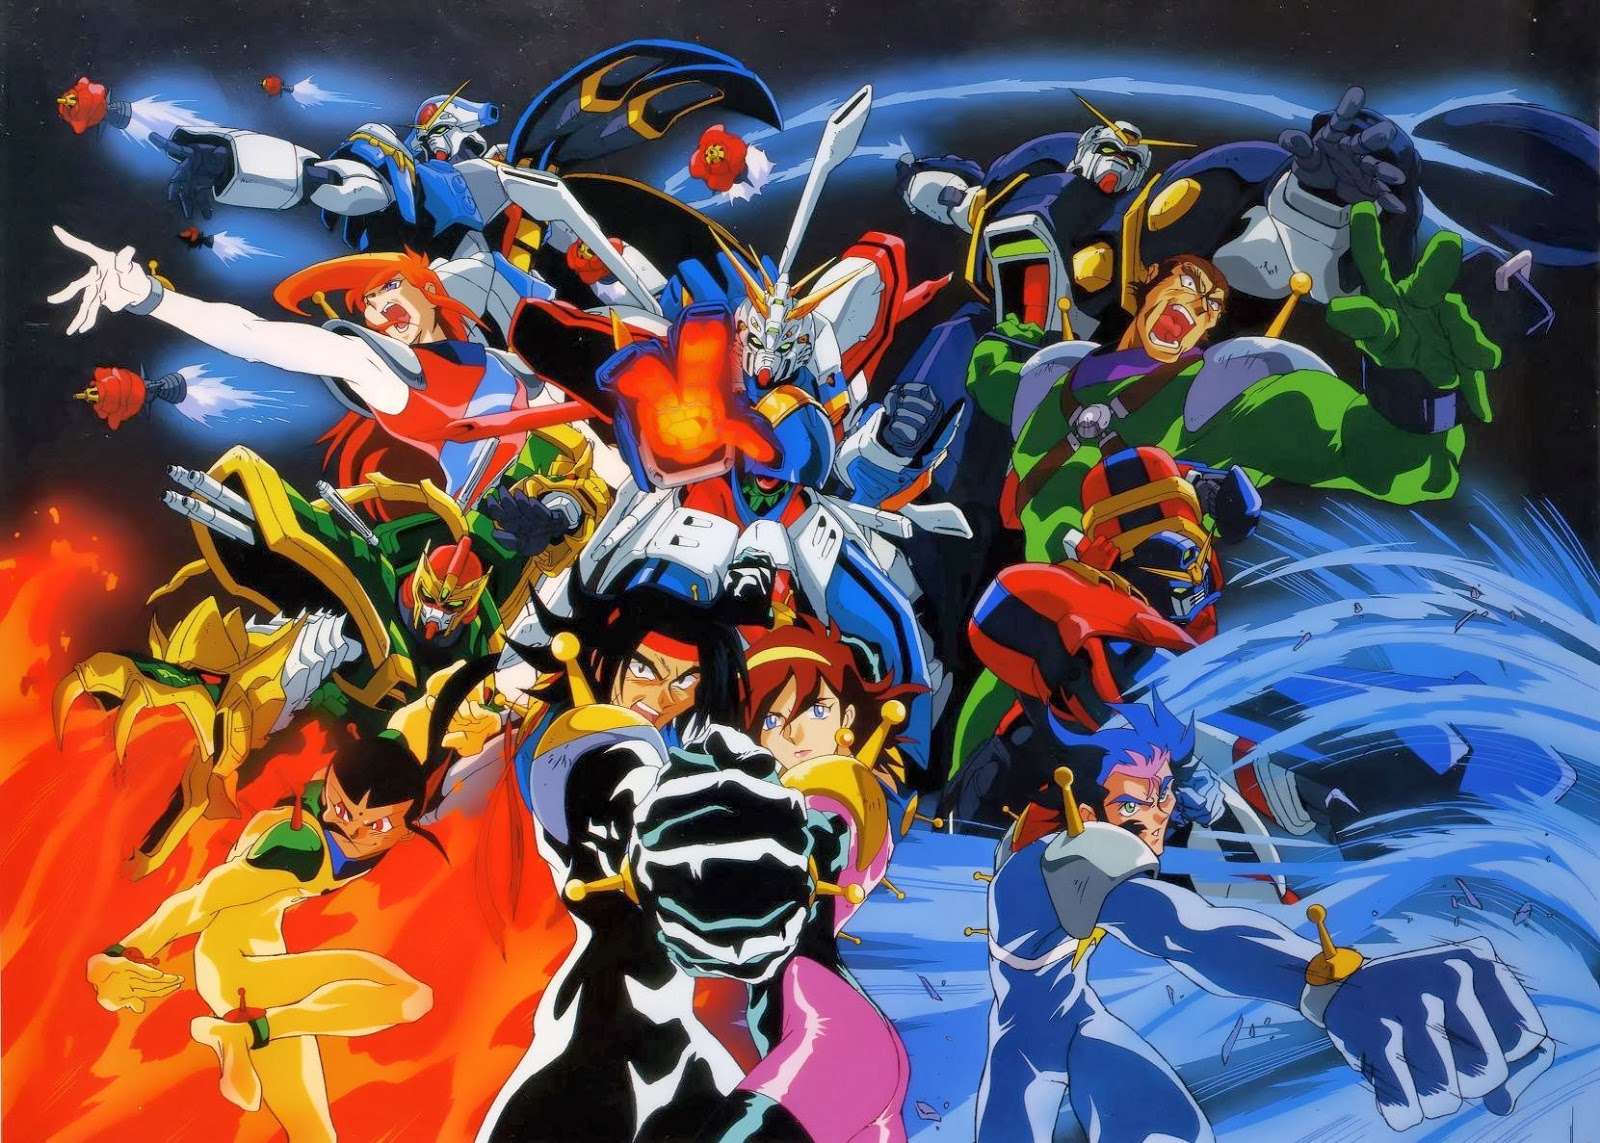 The cast of Mobile Fighter G Gundam